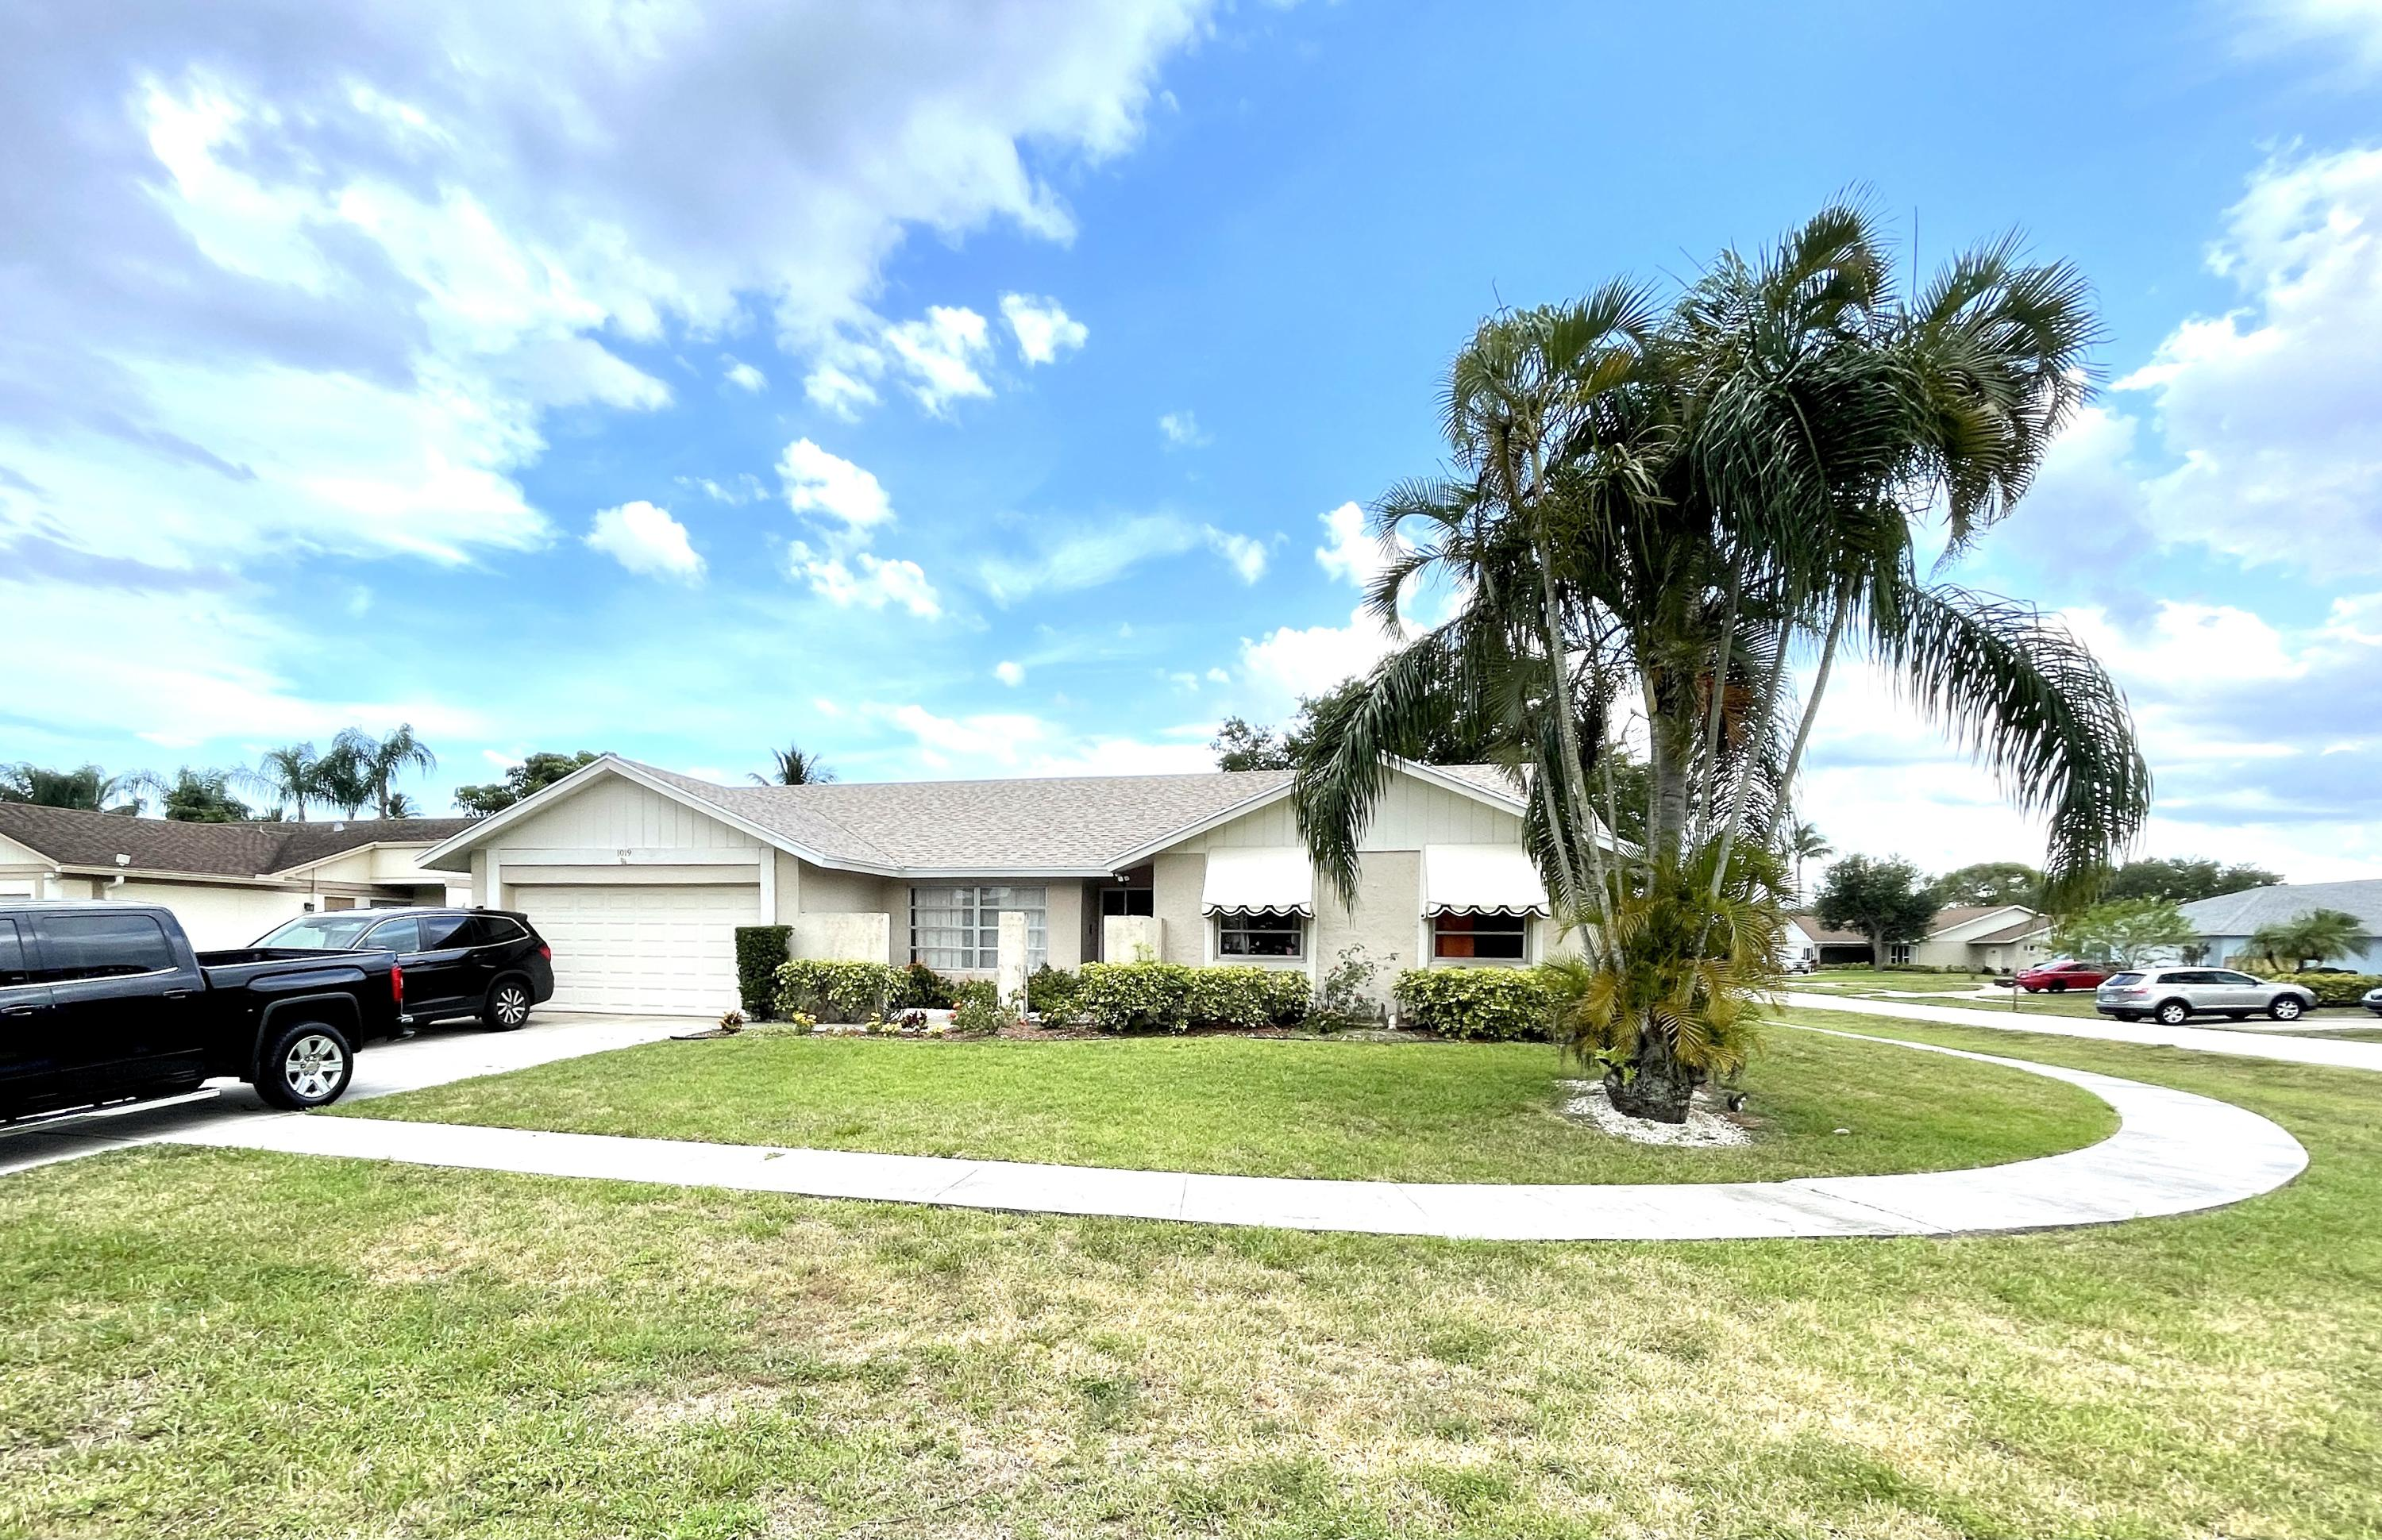 1019  Larch Way  For Sale 10716248, FL